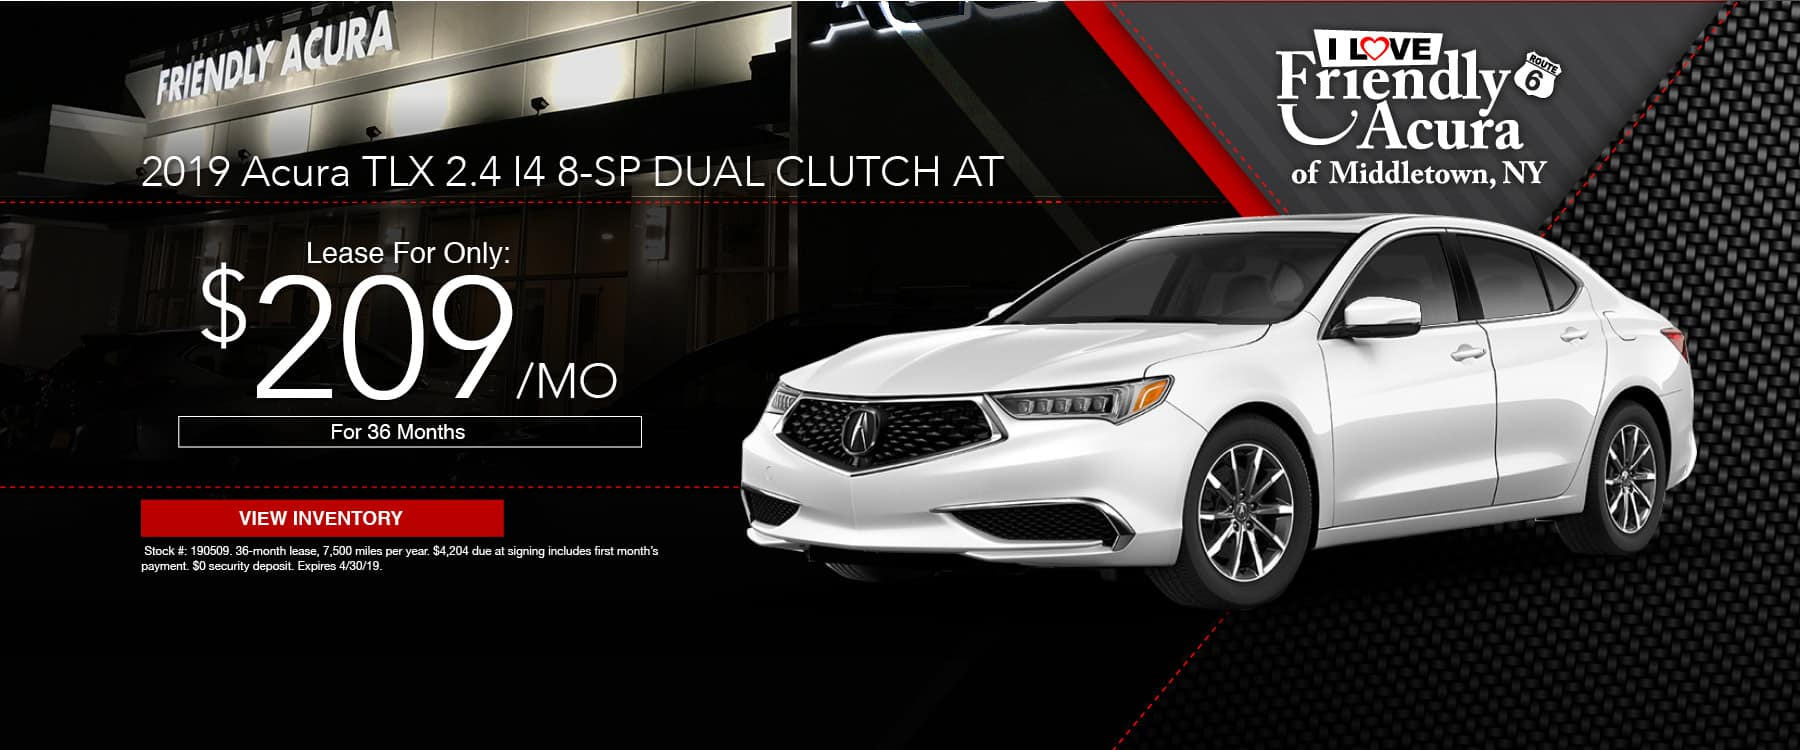 Lease a 2019 Acura TLX from Friendly Acura!